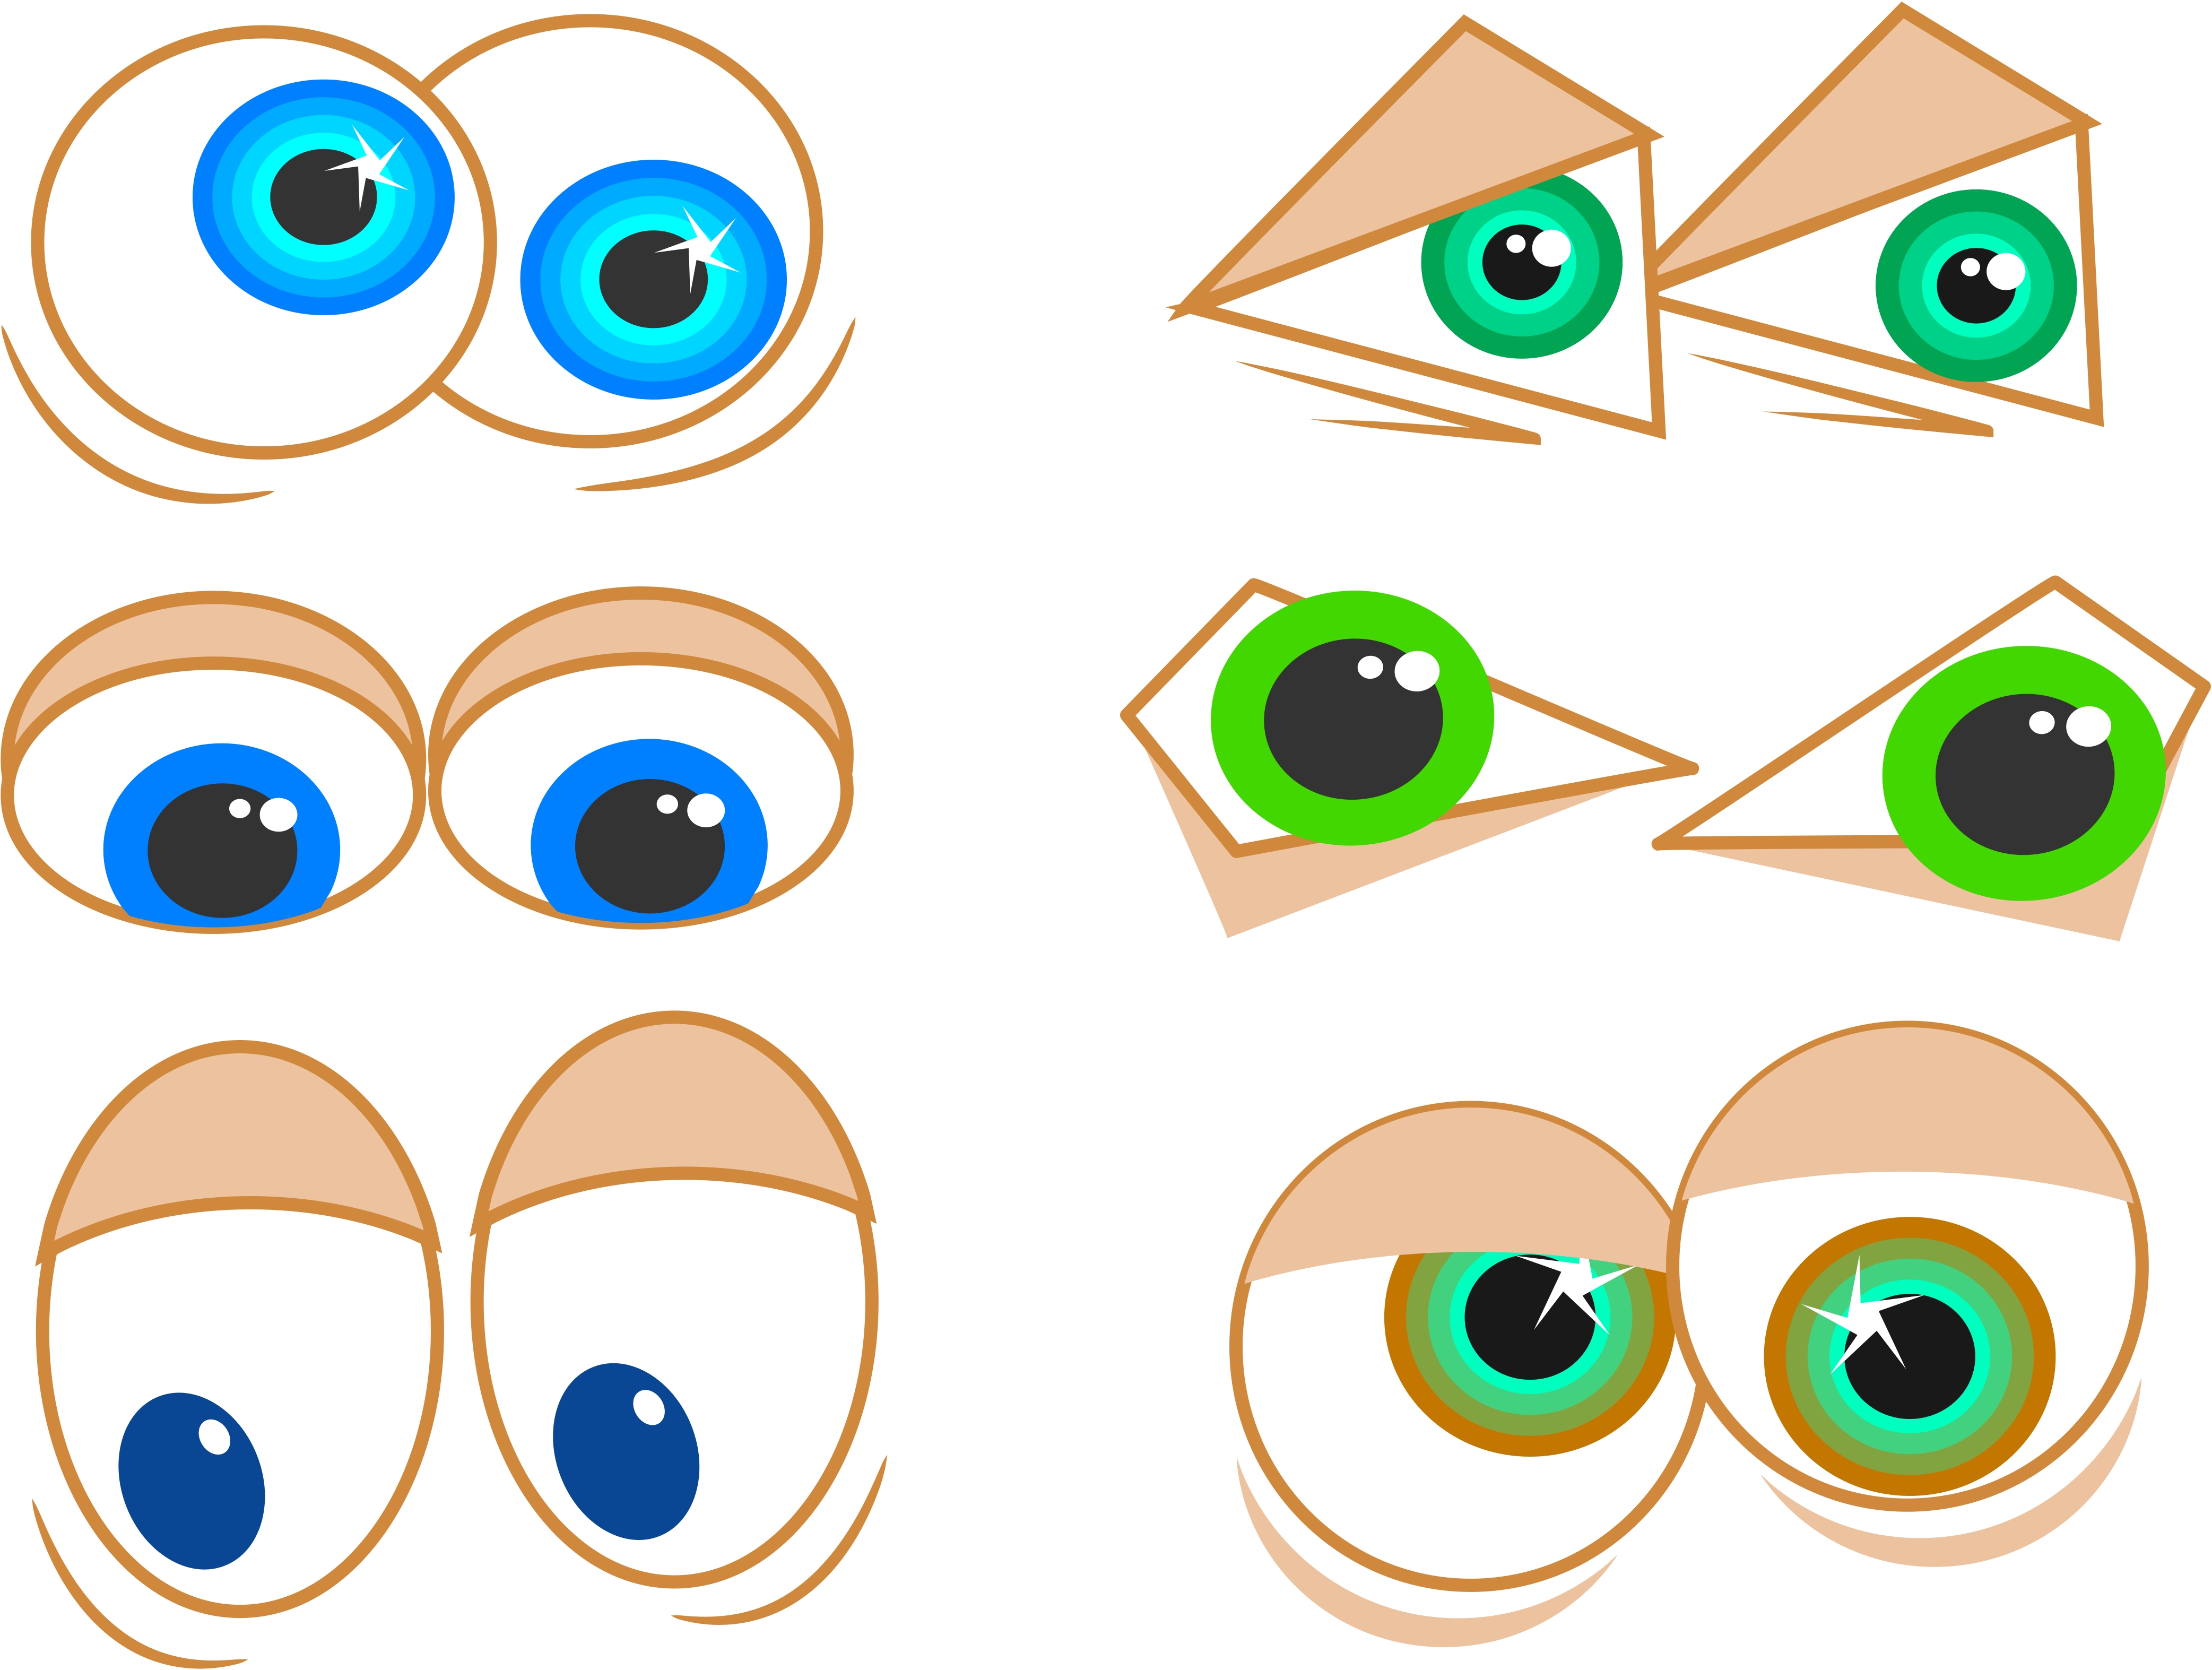 googly eyes clipart hd - photo #42